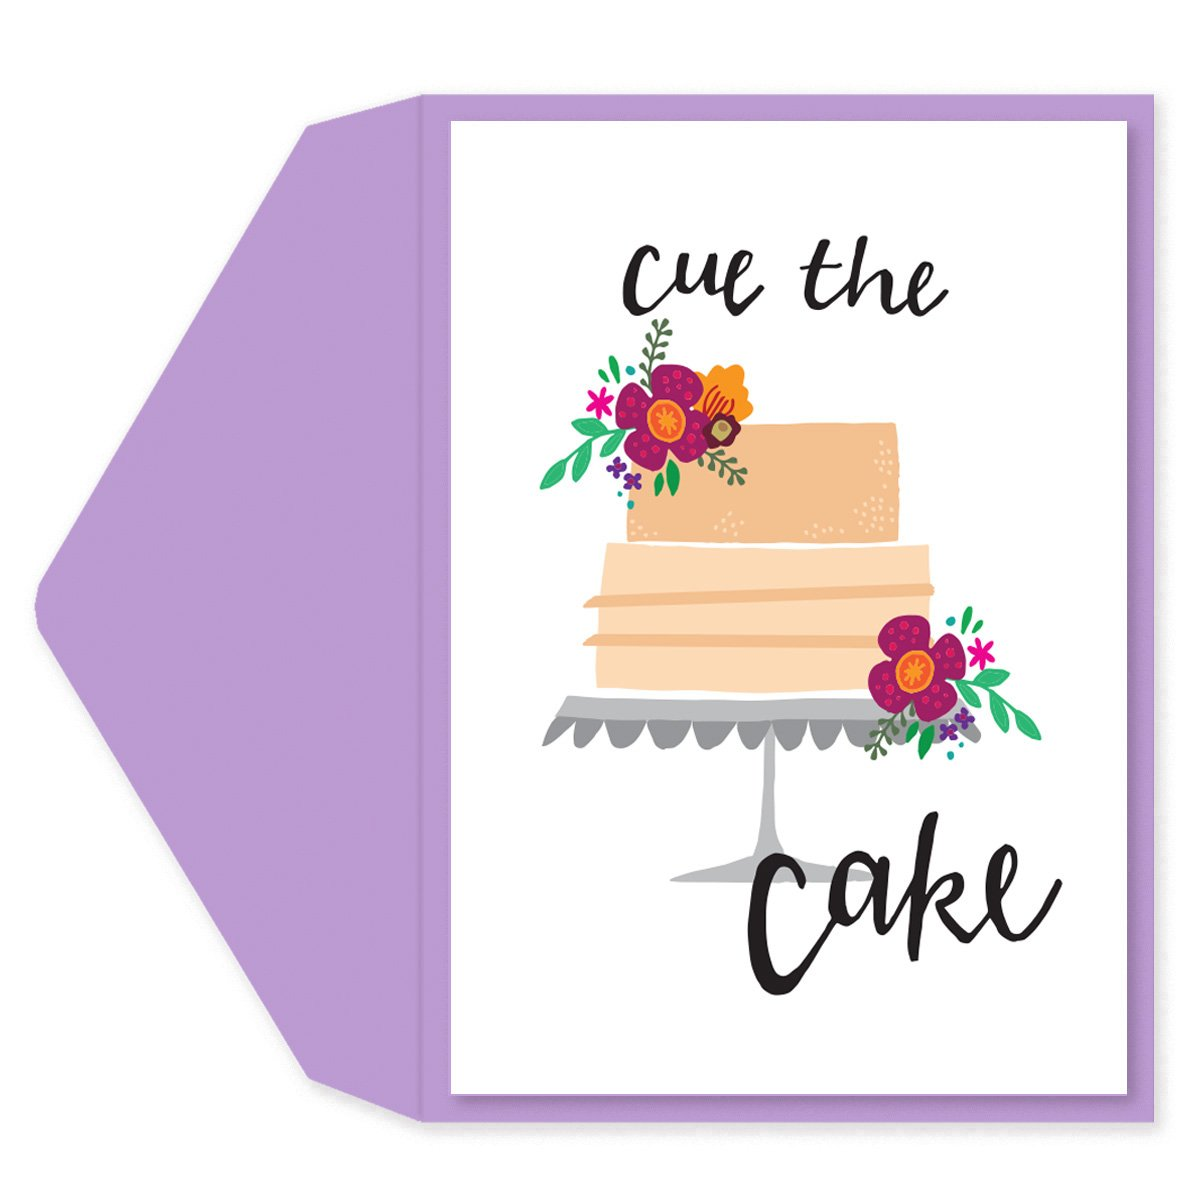 Cue the Cake Birthday Card